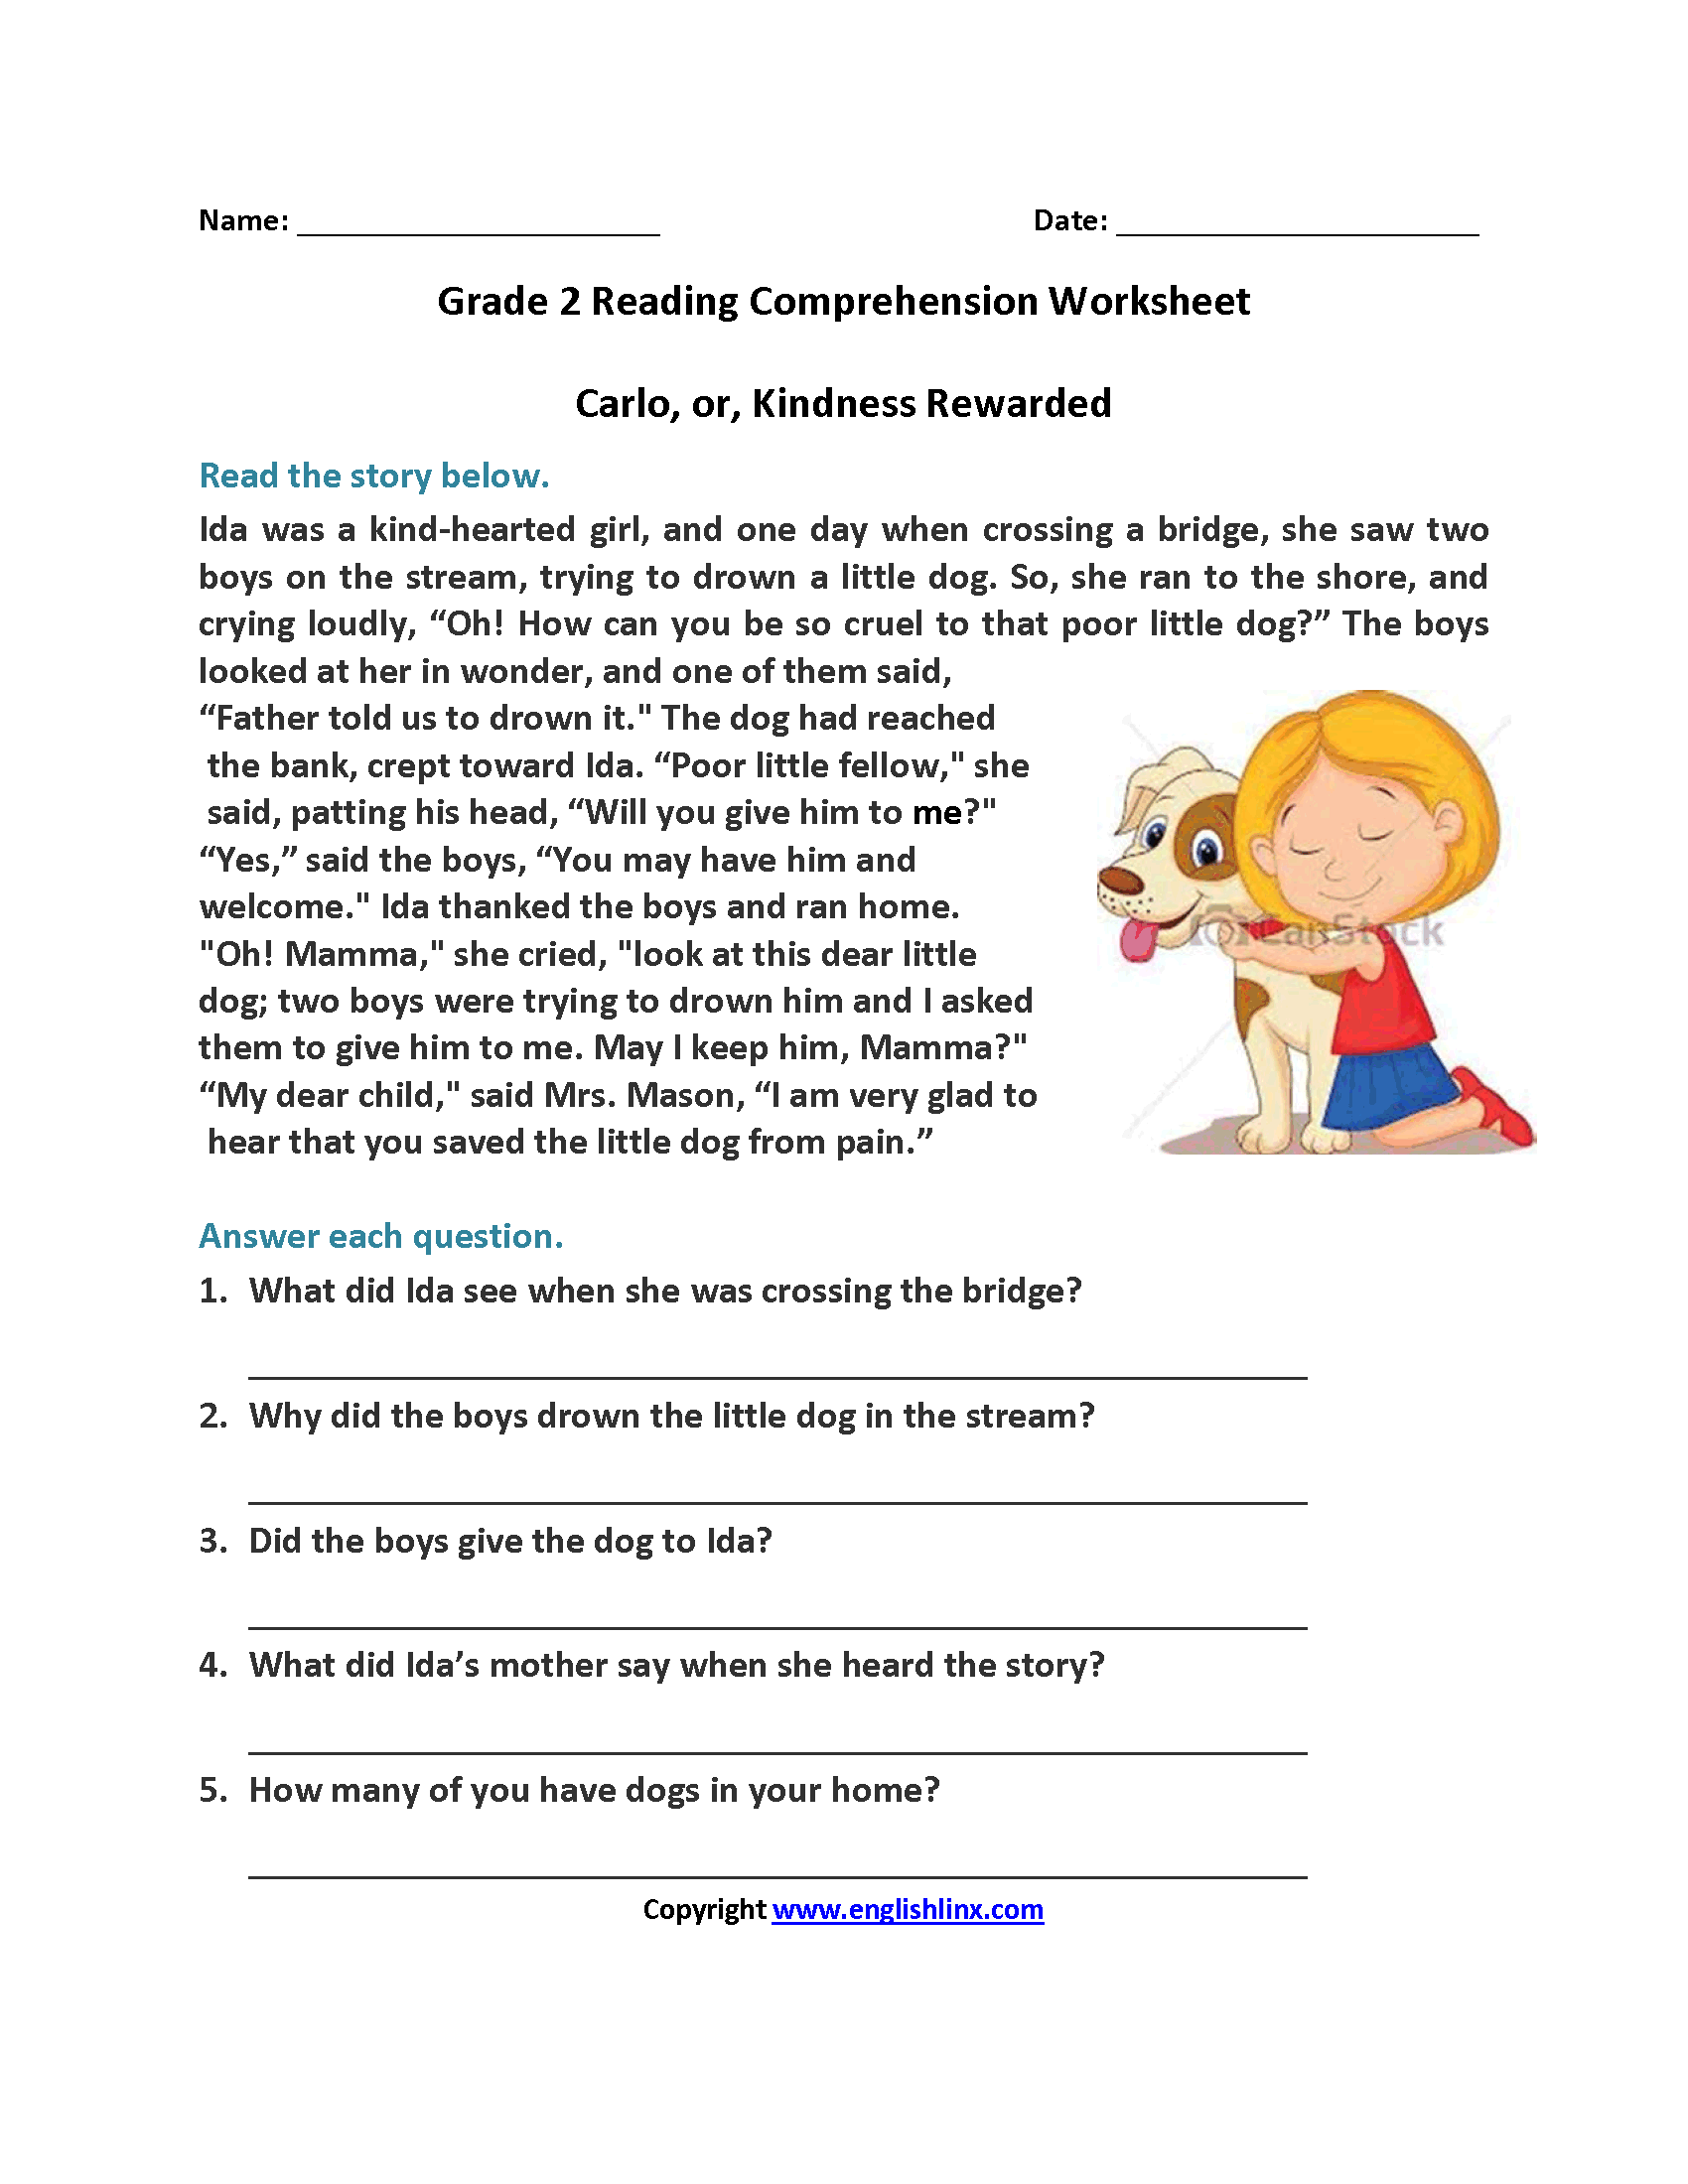 worksheet Free Comprehension Worksheets For Grade 3 carlo or kindness rewarded second grade reading worksheets worksheets